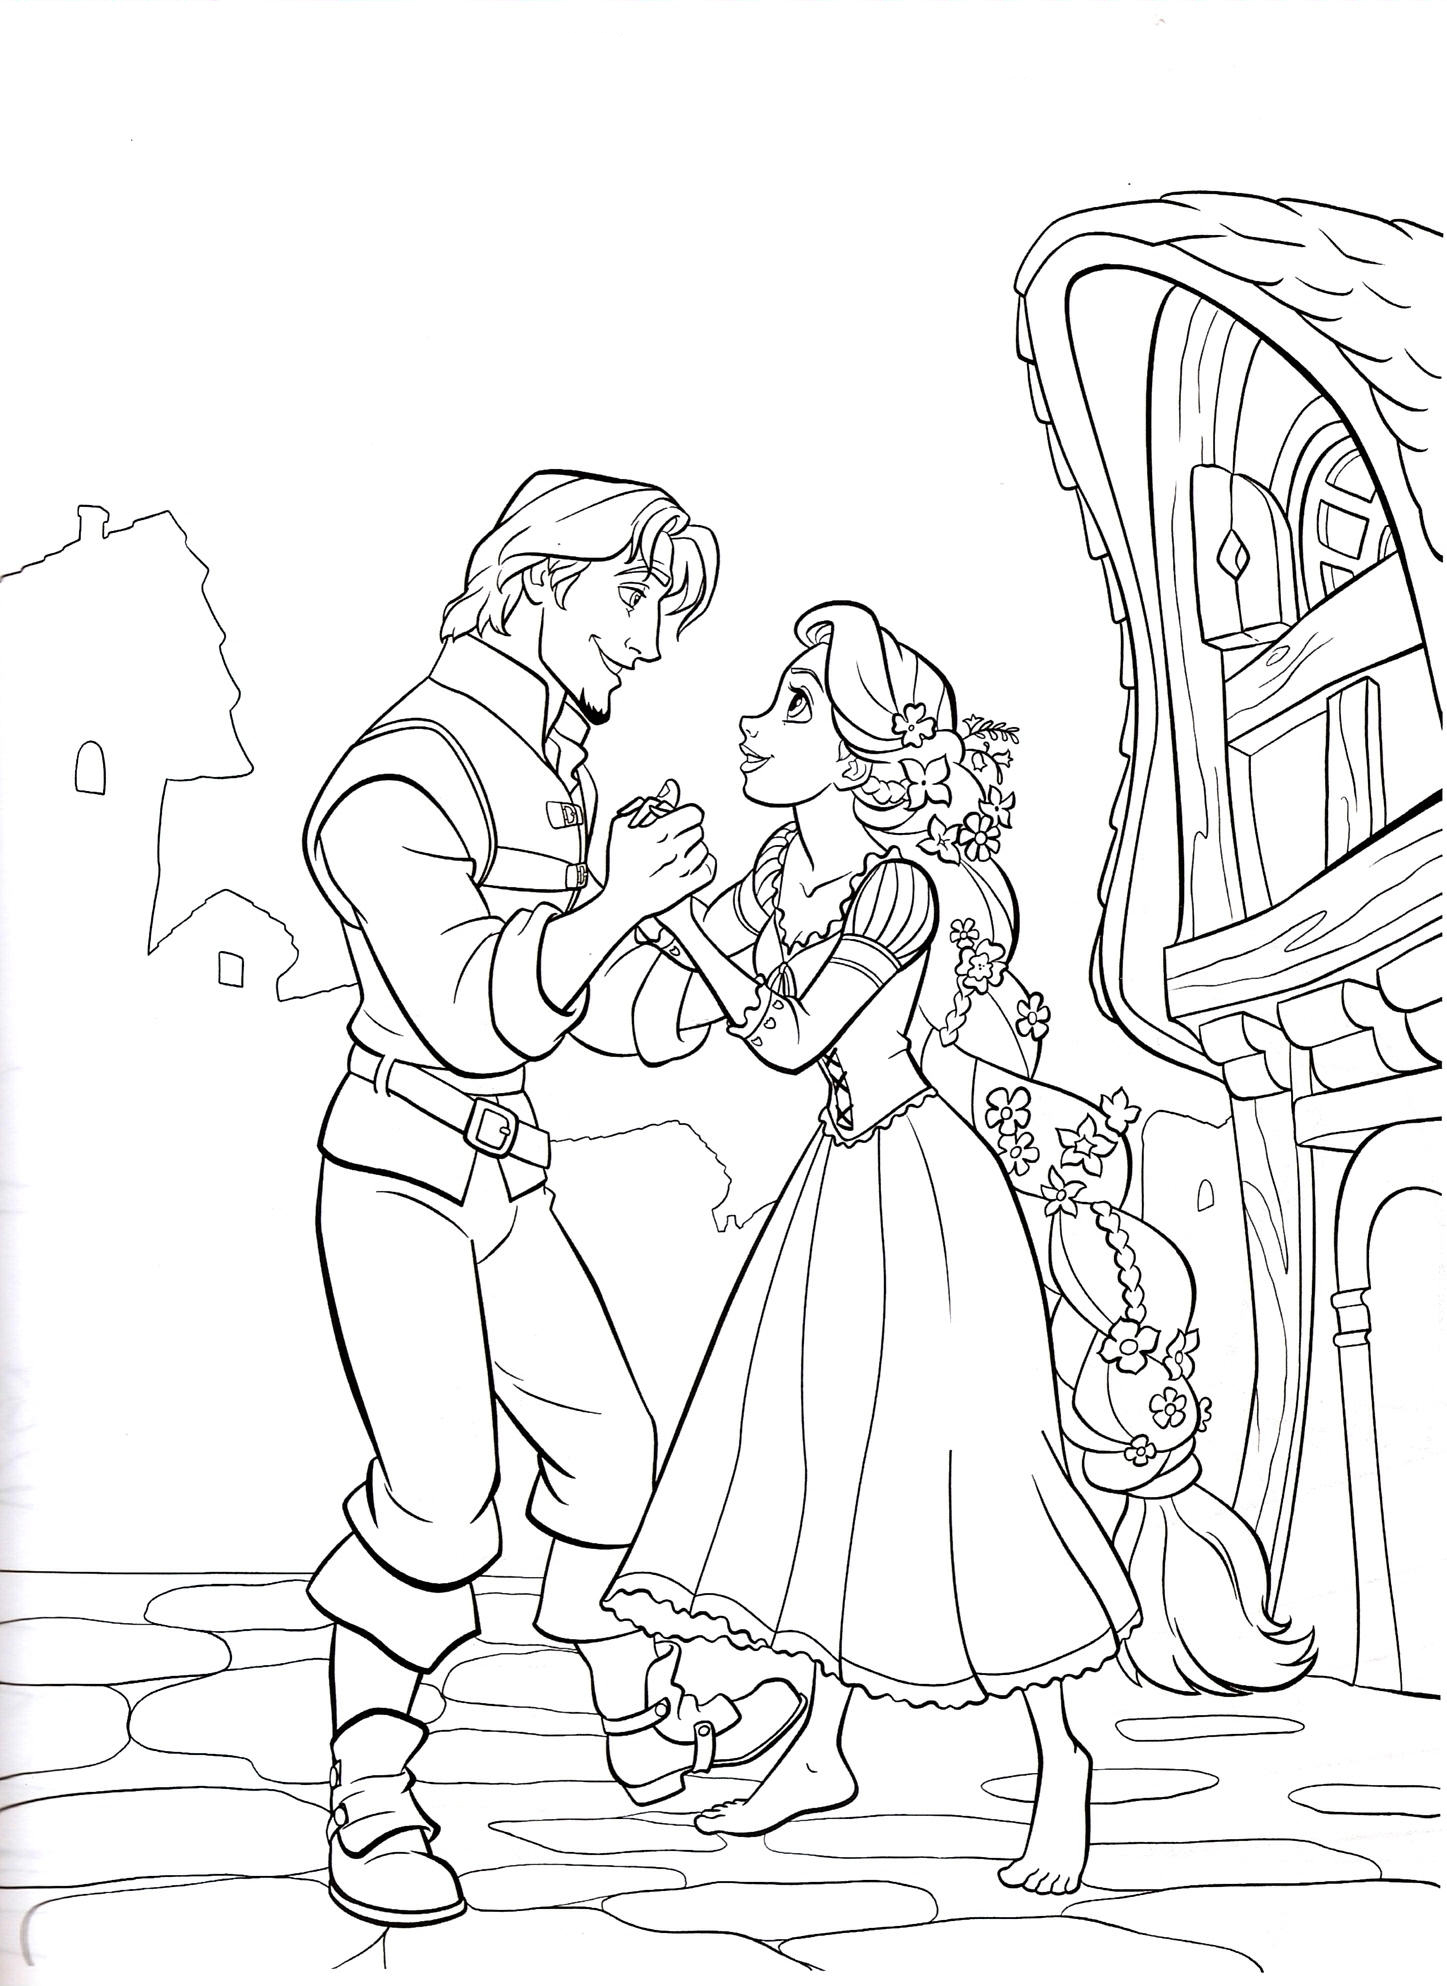 disney princess rapunzel coloring pages rapunzel coloring pages best coloring pages for kids